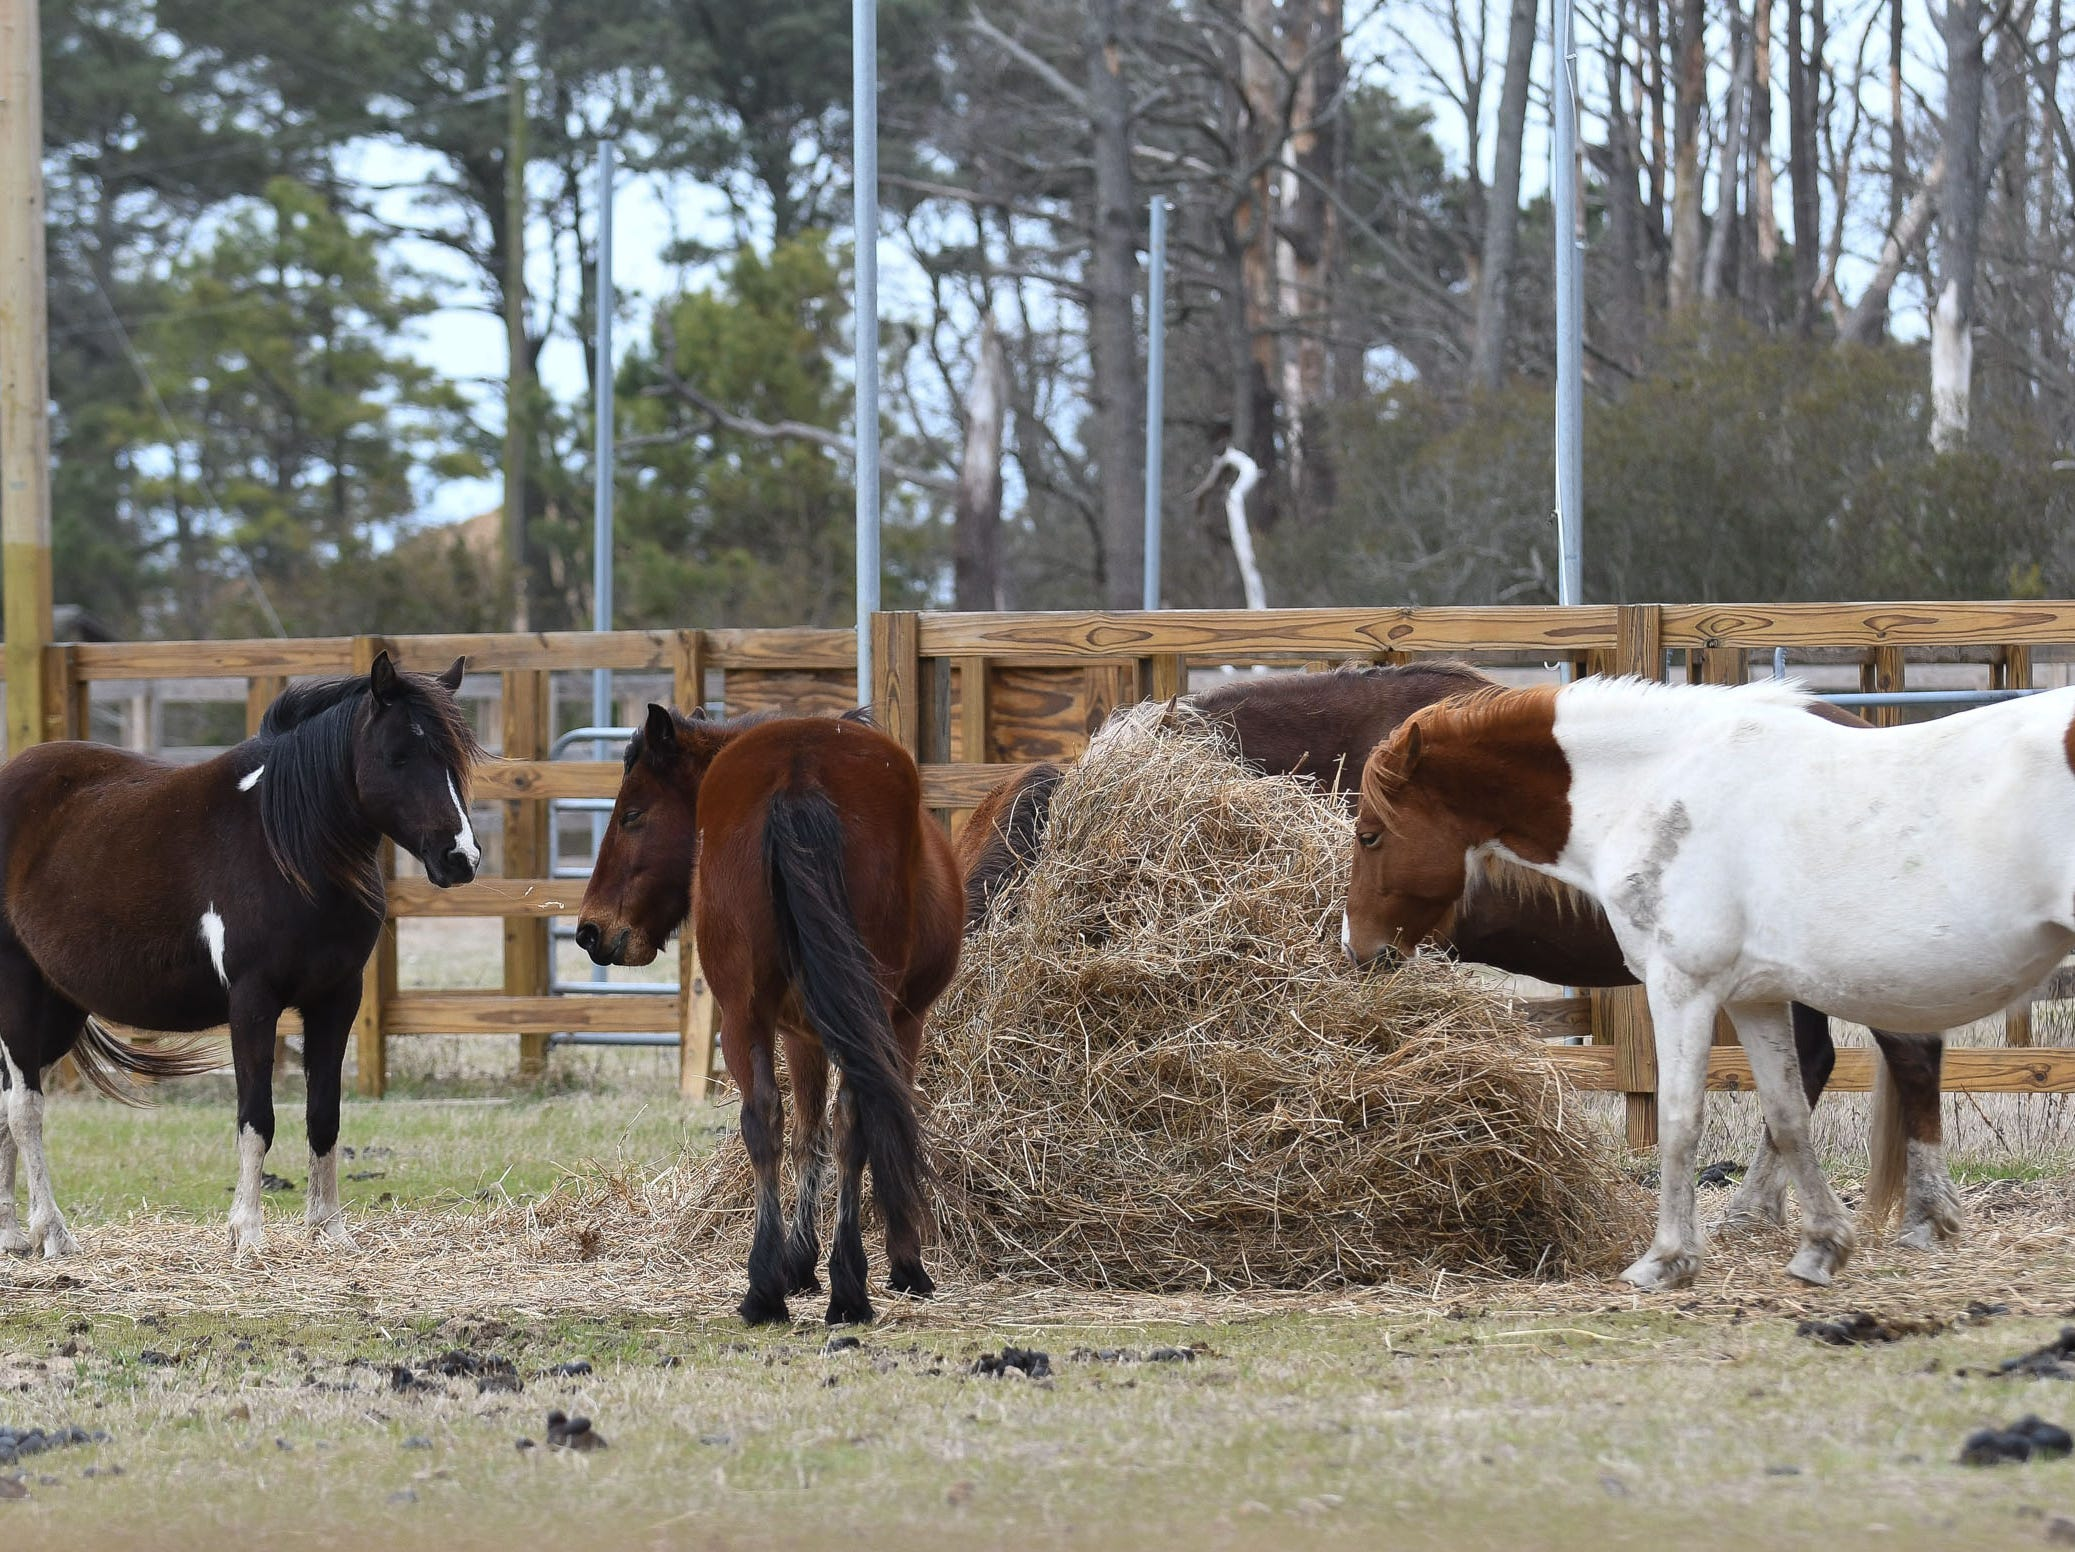 Chincoteague pony stallion Riptide and his band were penned in the south corral on Assateague Island after visitors to the Chincoteague National Wildlife Refuge disregarded warnings not to approach the wild ponies.